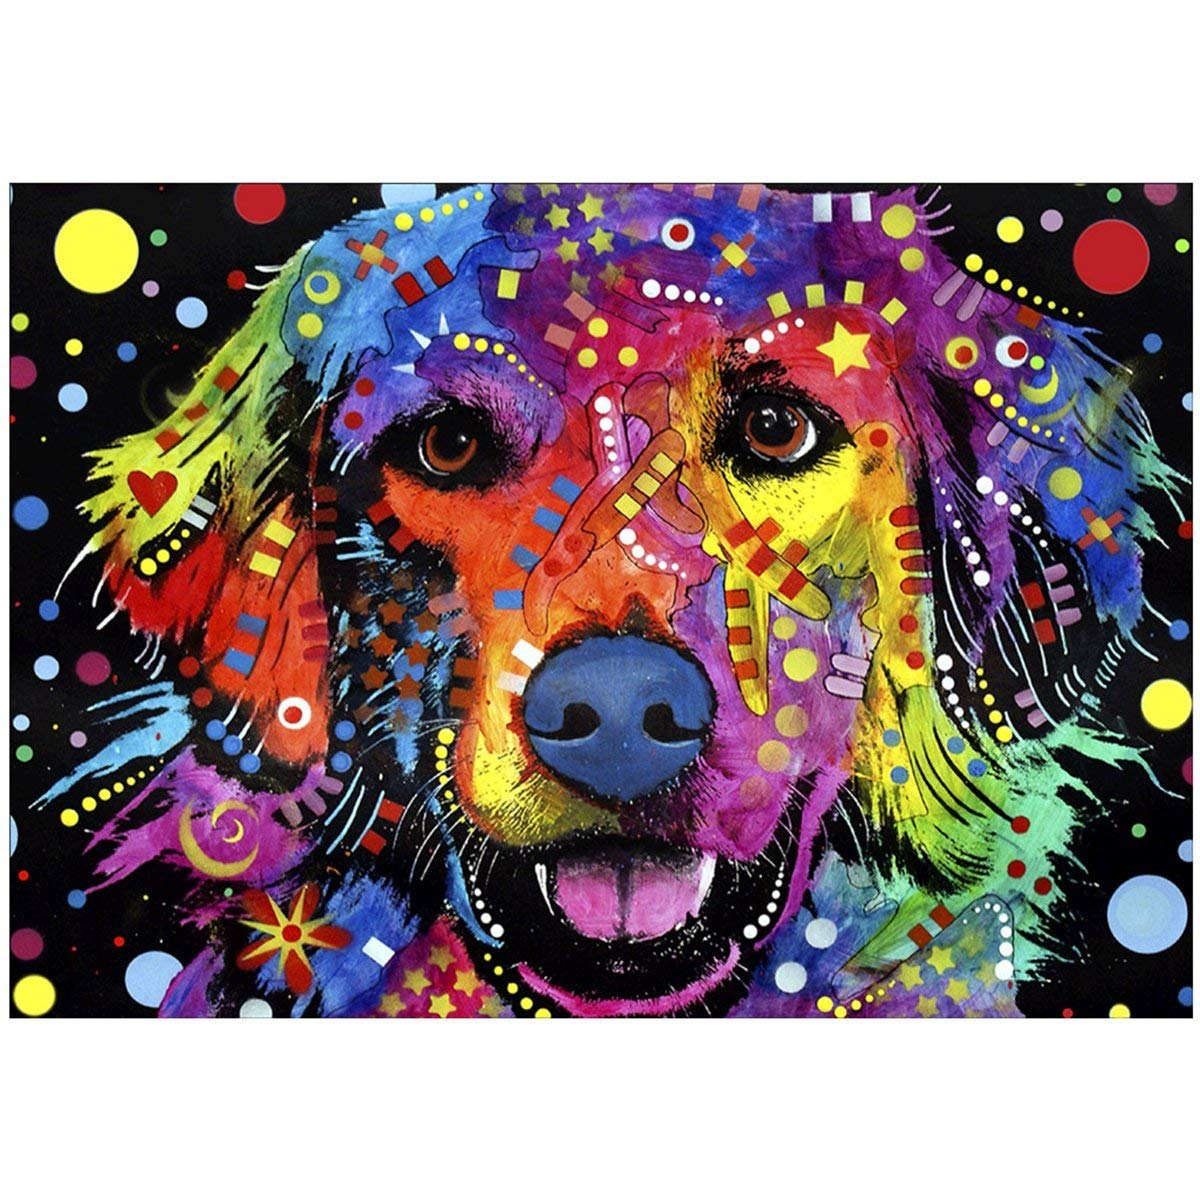 NEILDEN 5D DIY Diamond Painting Full Drill Cross Stitch Kit 40x30cm Diamond Painting Kits for Adults Rhinestone Embroidery Diamond Art(Unicorn)